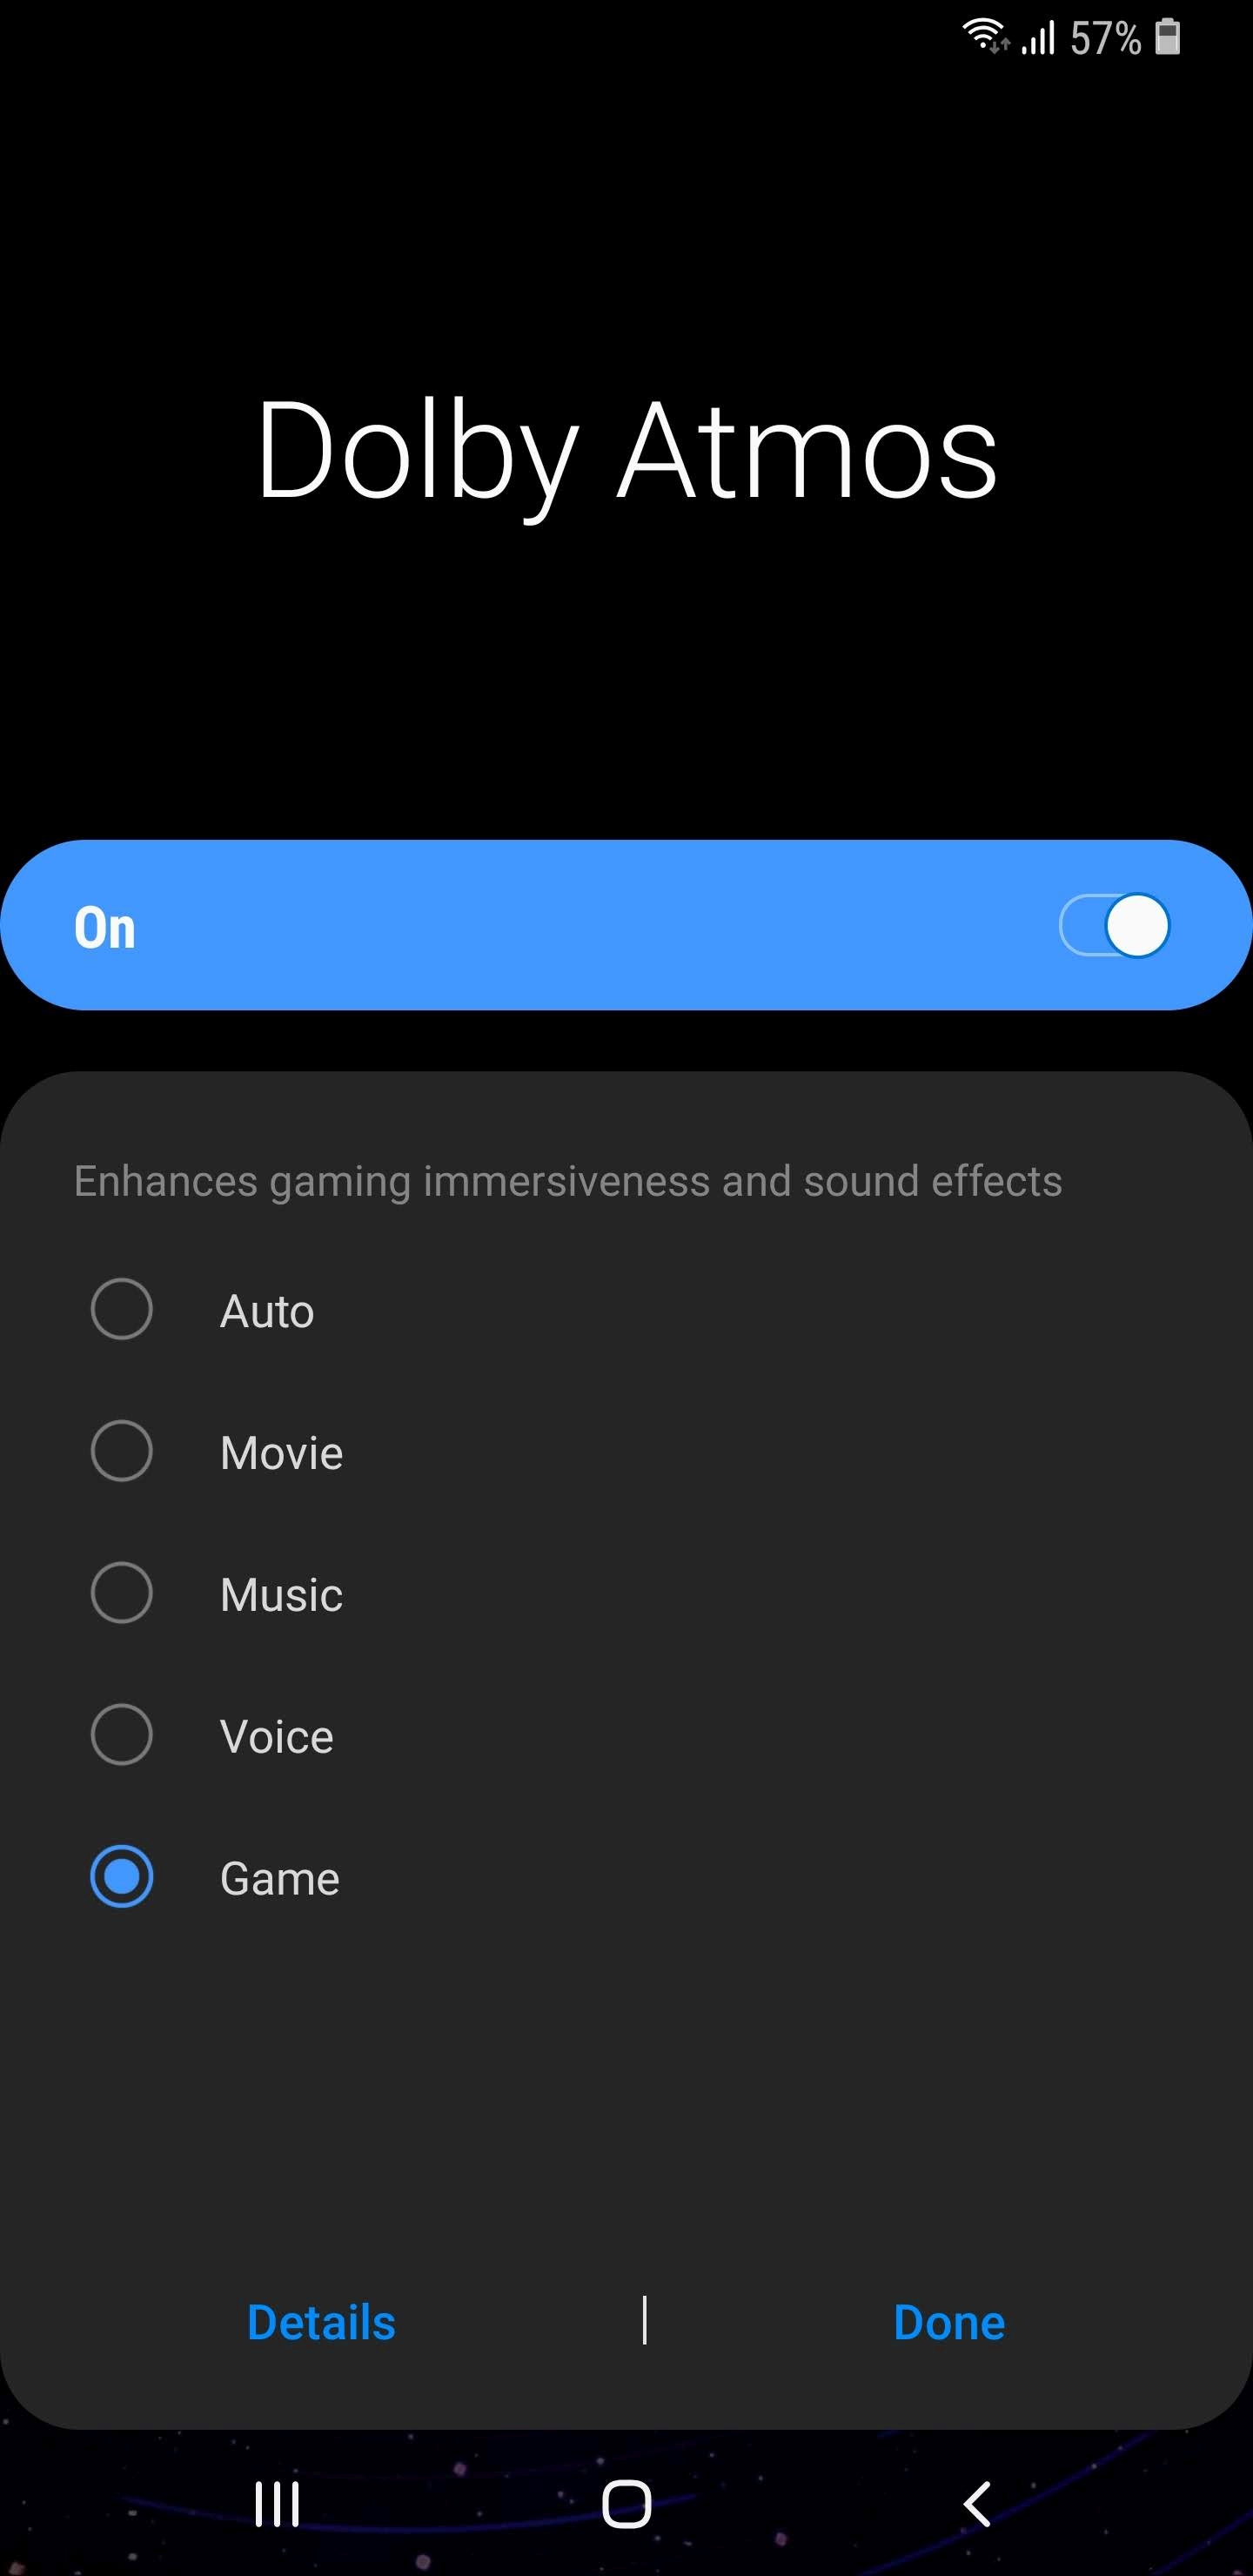 One UI (Android Pie) feature focus: Dolby Atmos gets game